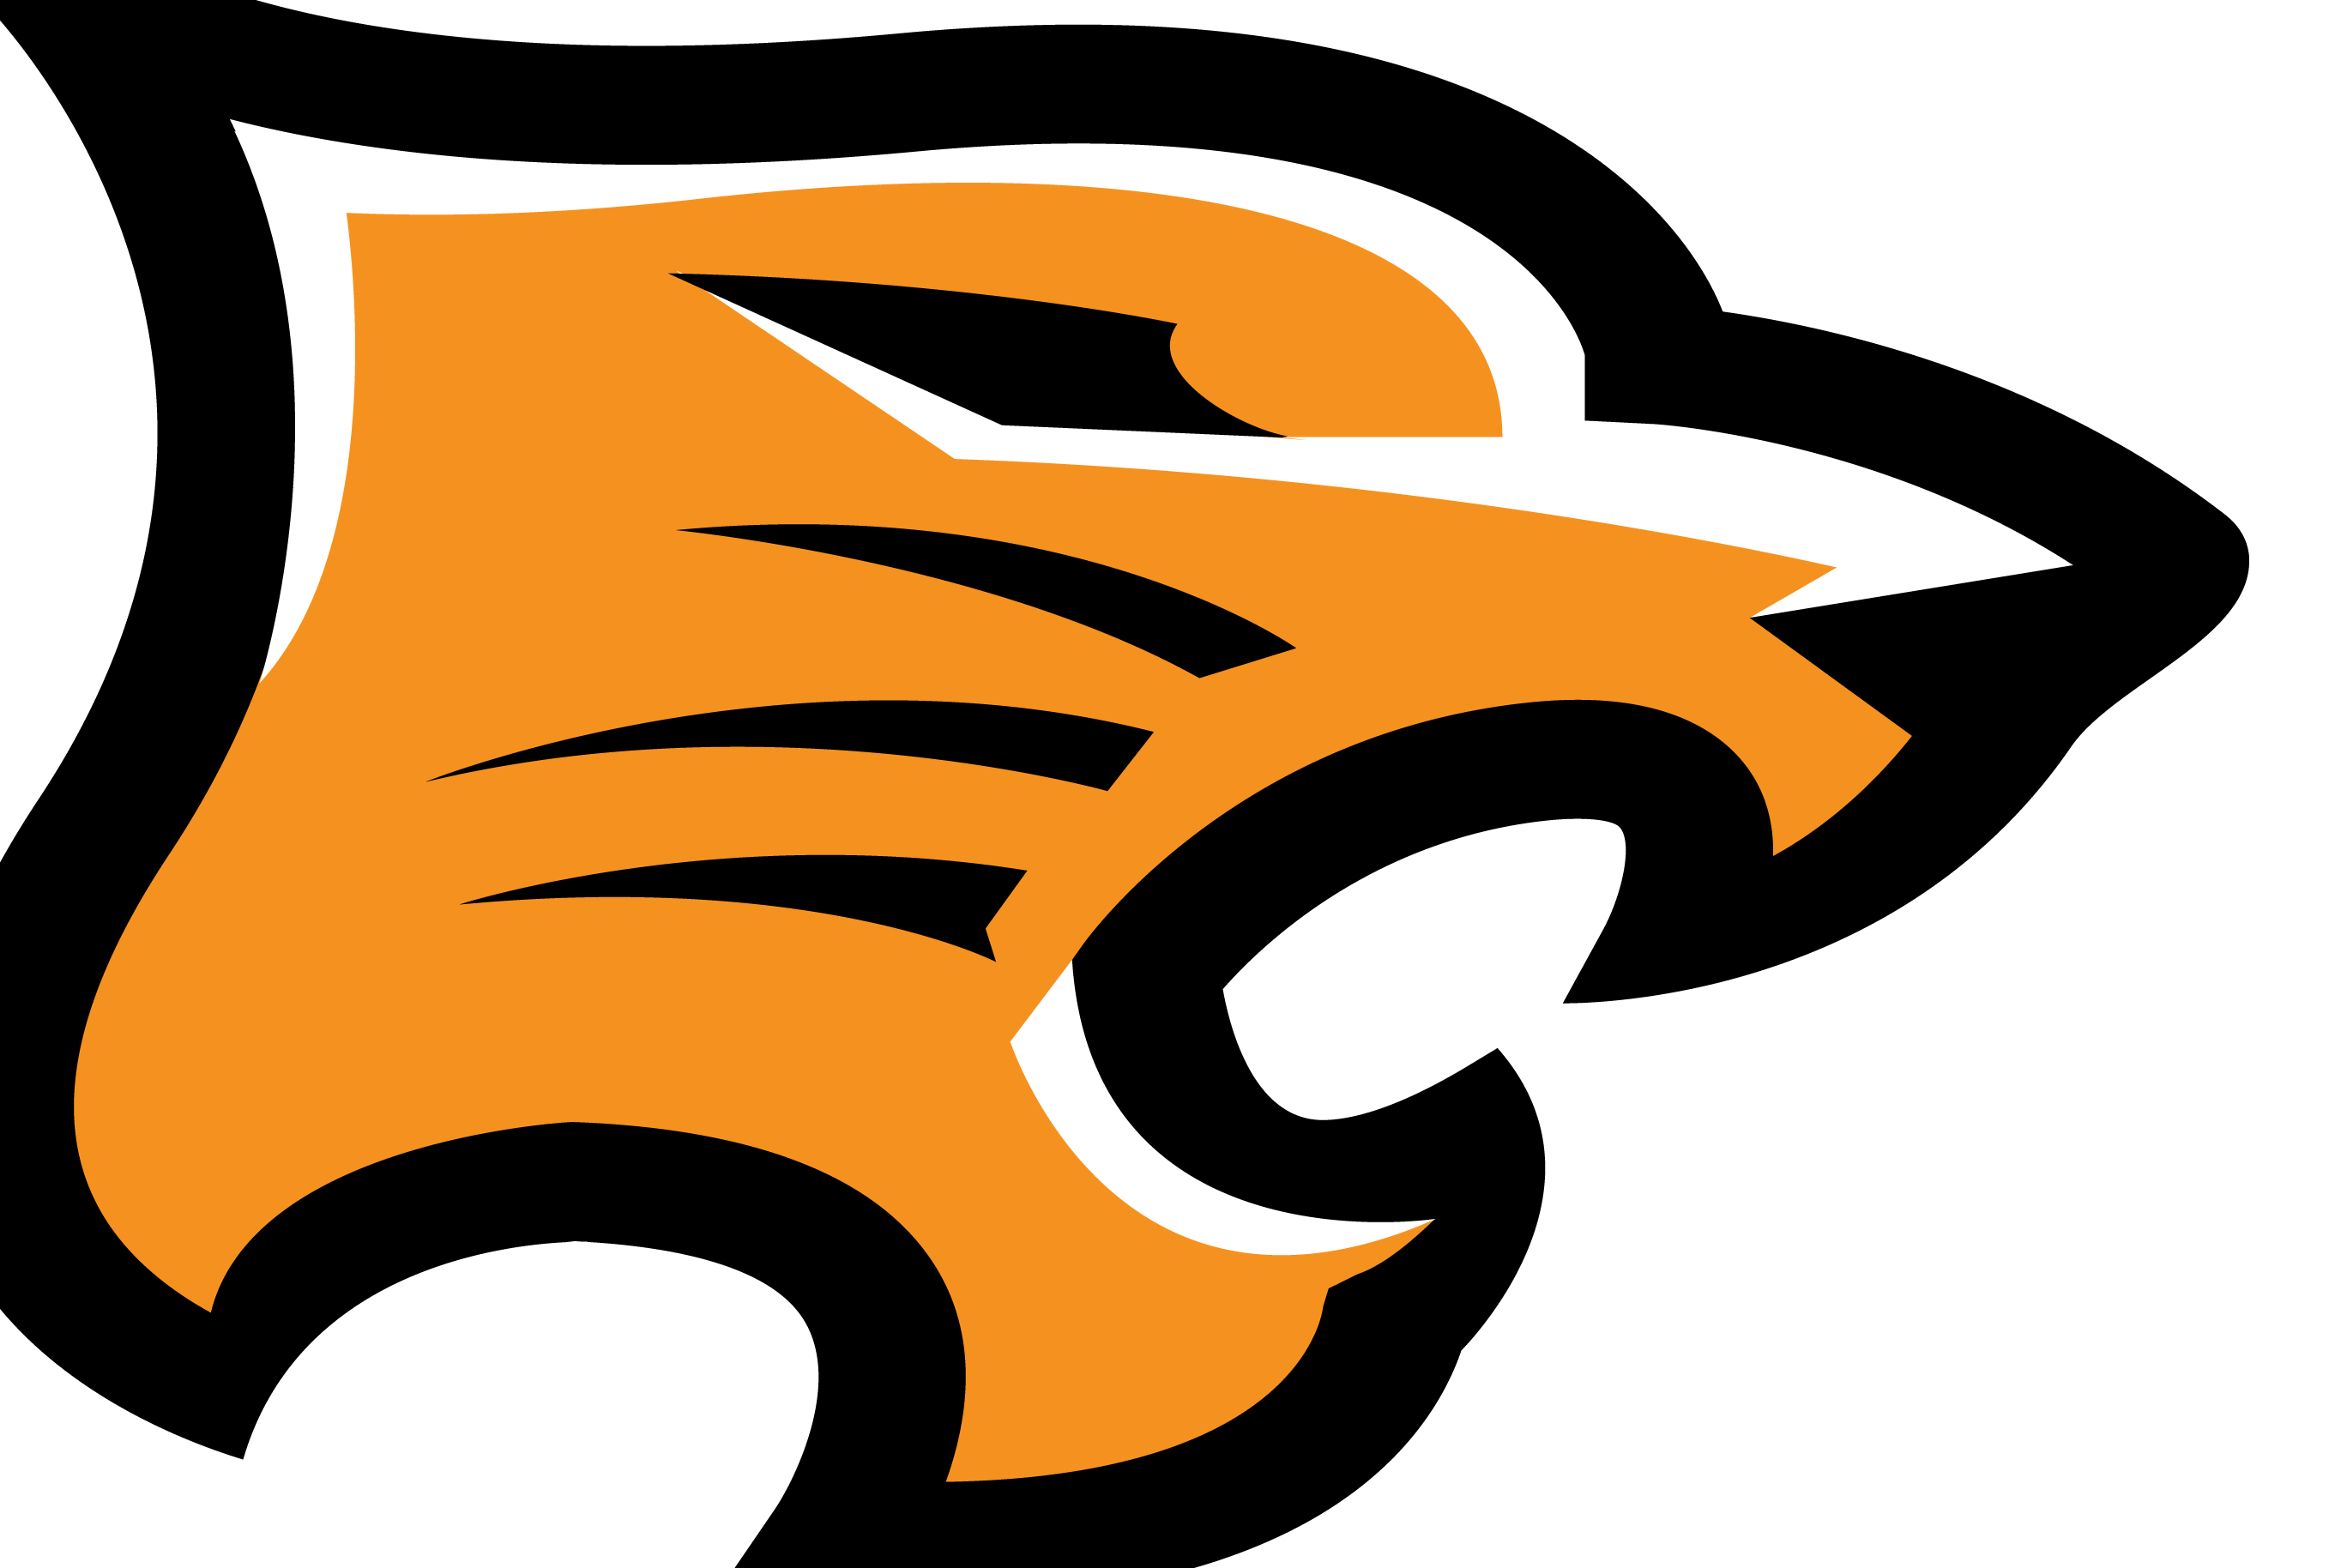 Tiger head logo design - photo#43